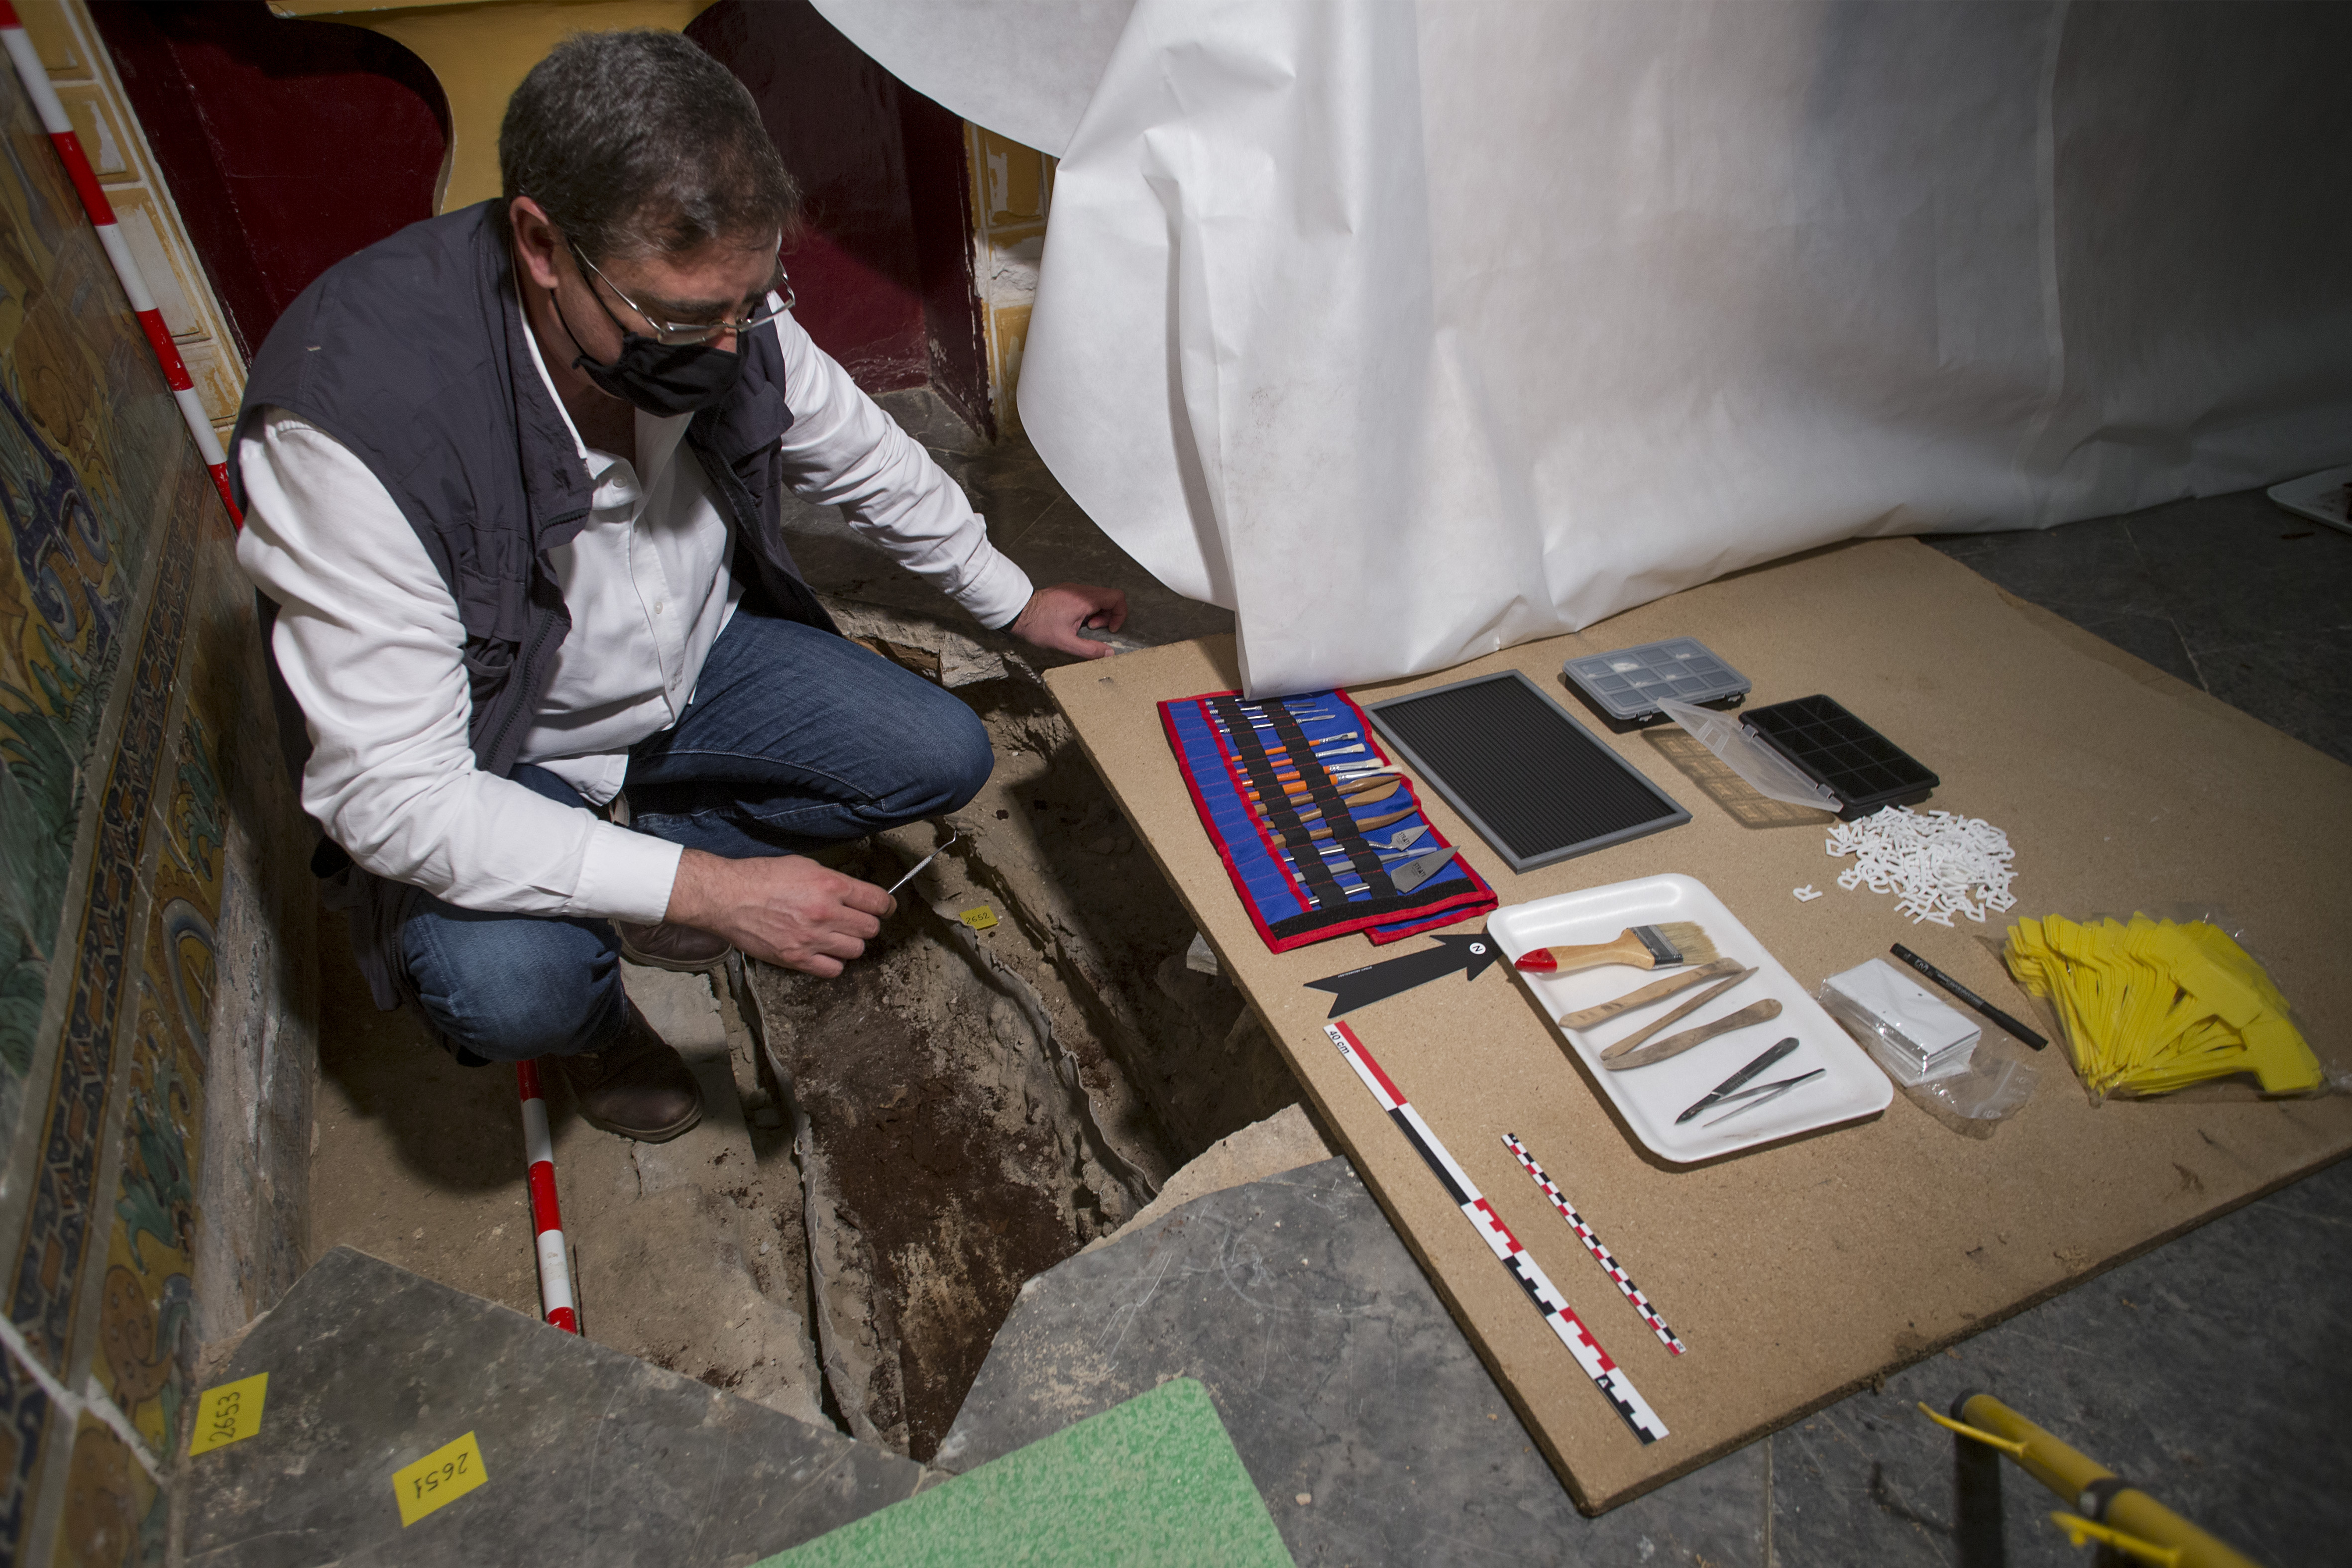 Medieval child found buried in Alcázar palace